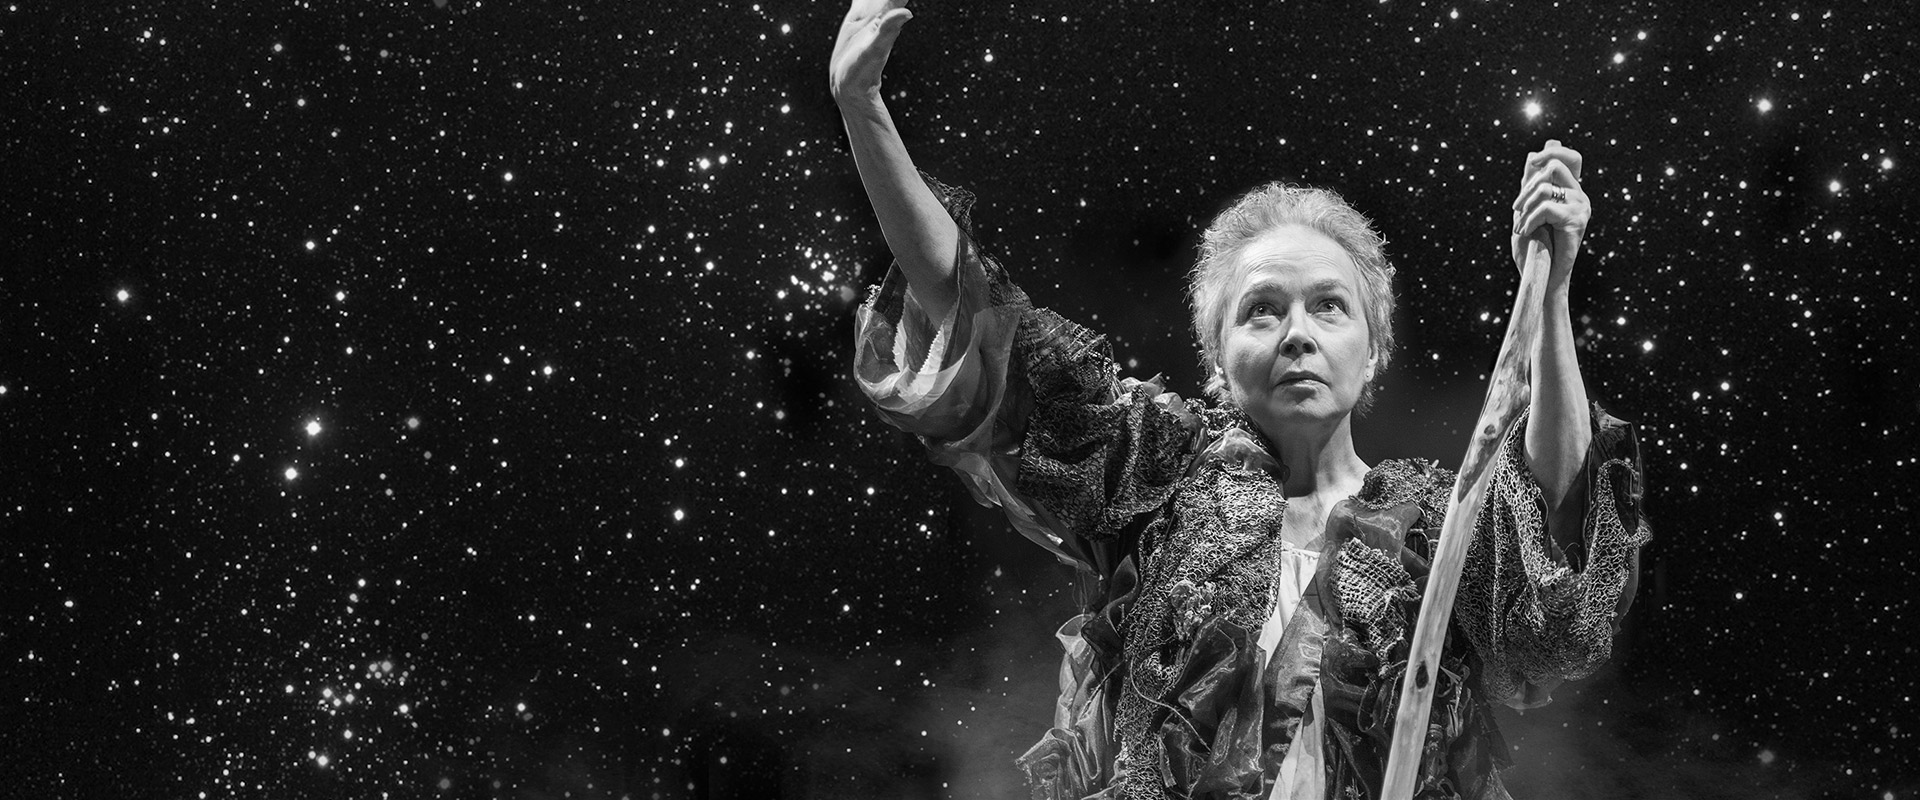 Publicity shot from The Tempest